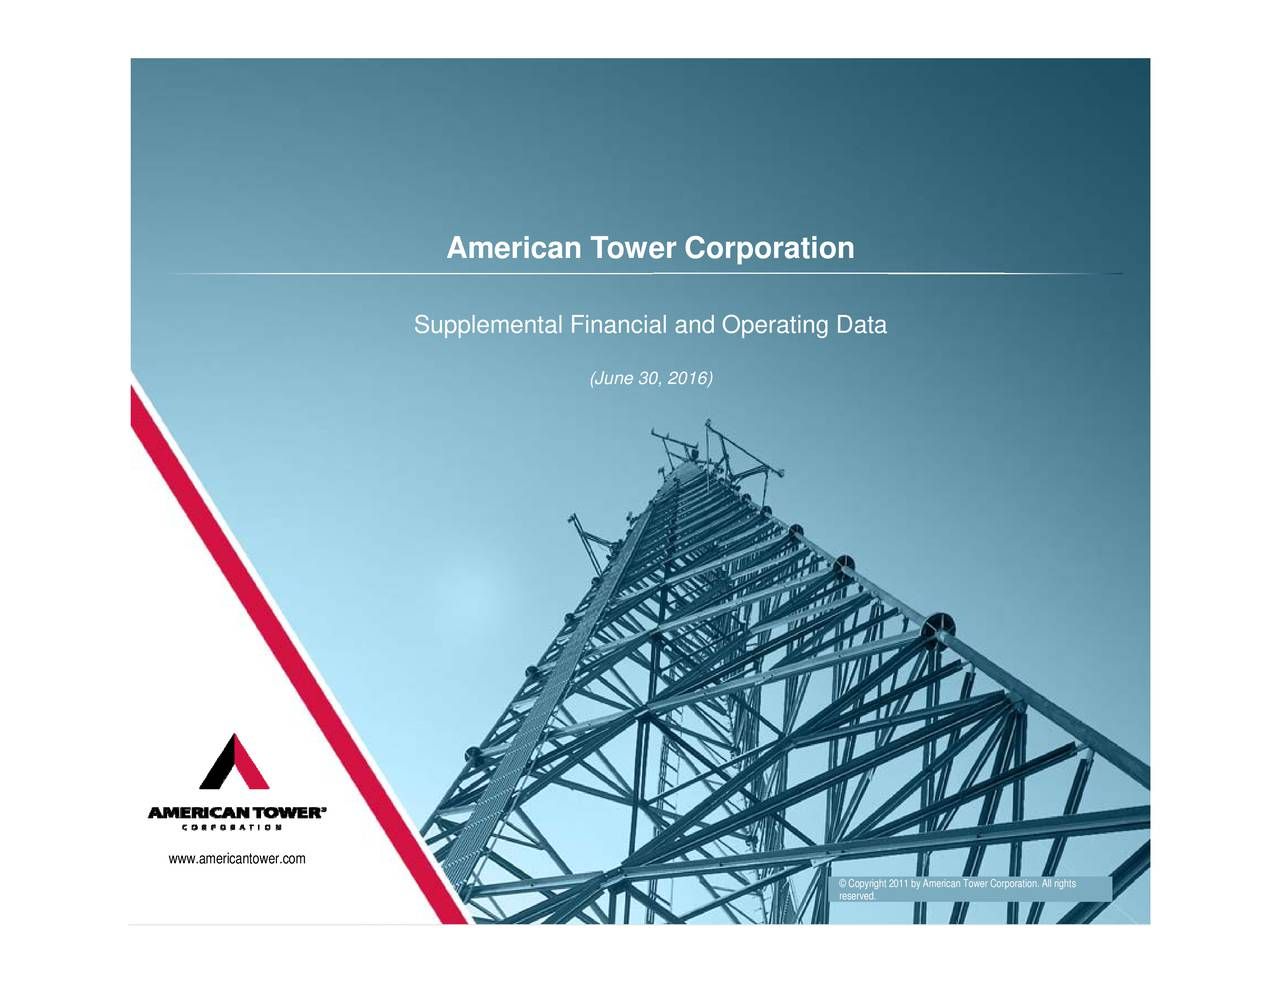 (June 30, 2016) American Tower Corporation Supplemental Financial and Operating Data www.americantower.com